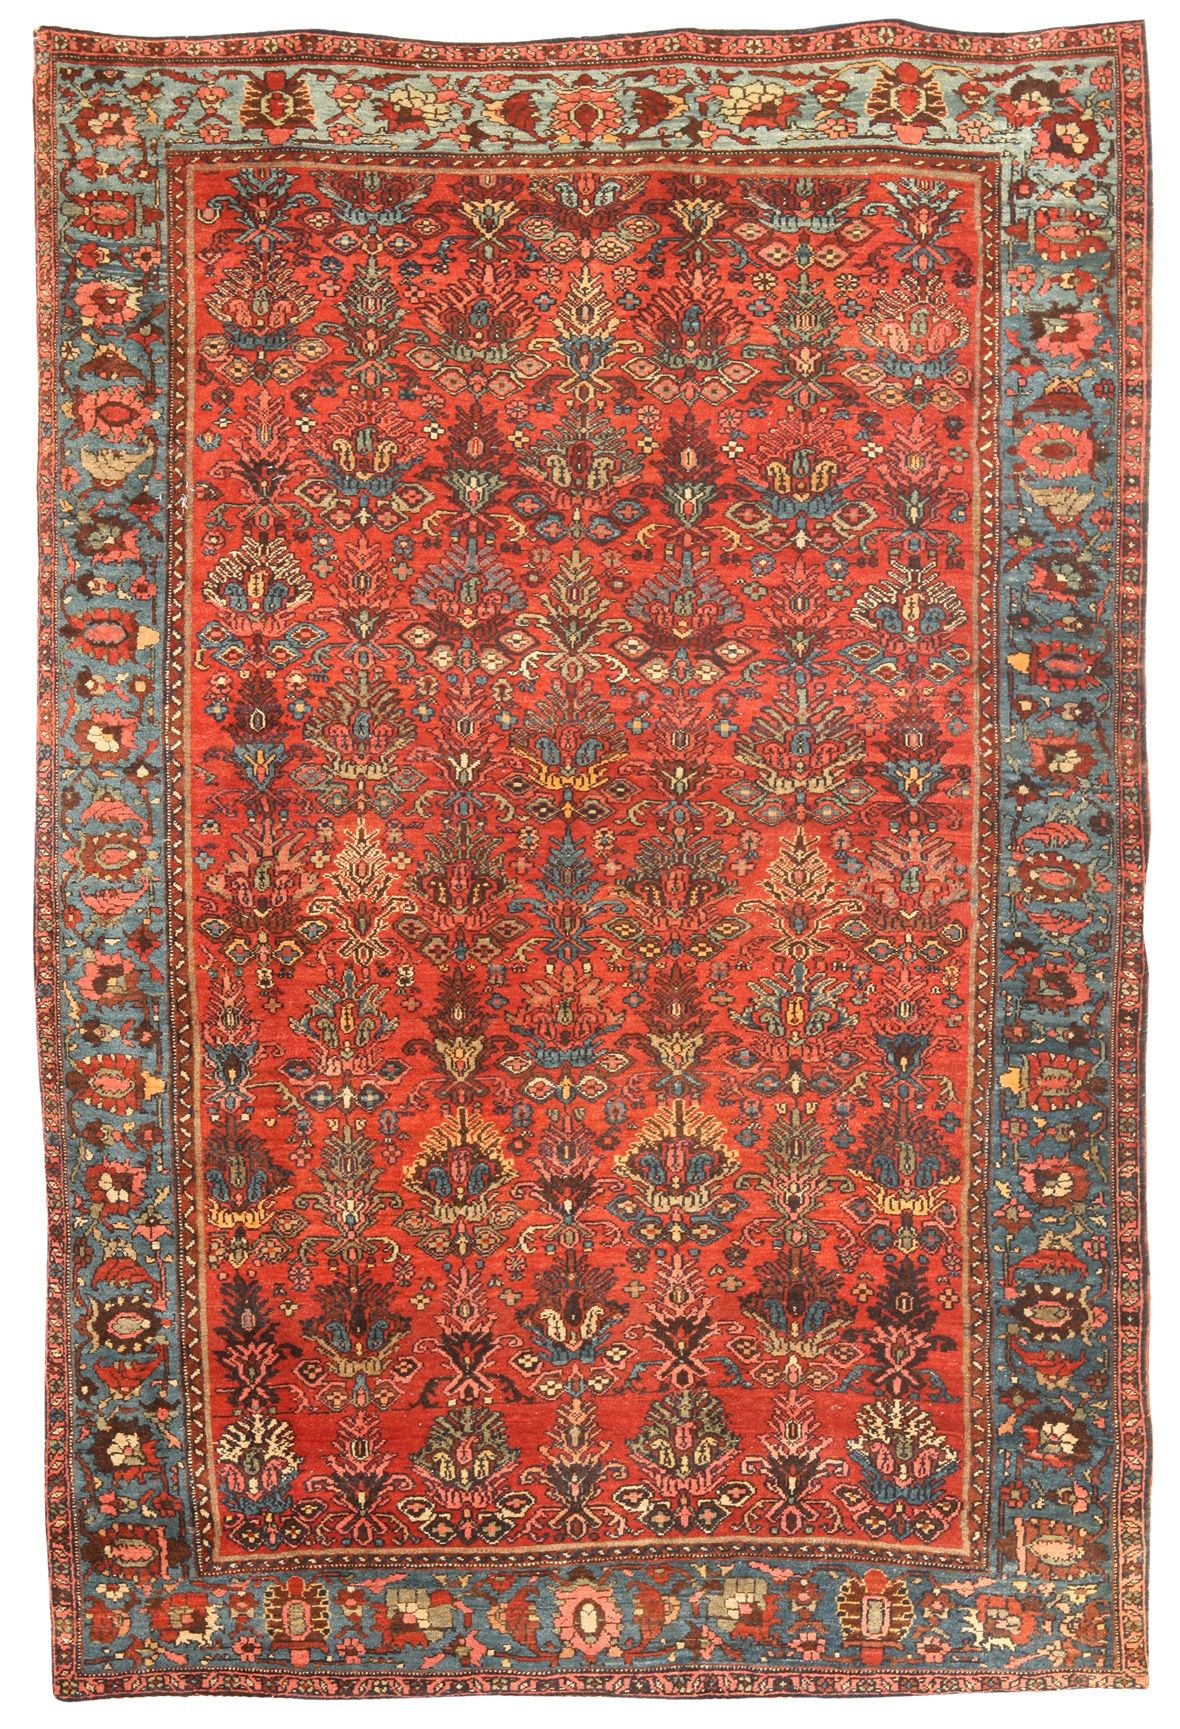 Antique Bidjar Rug 21795 Rugs On Carpet Asian Rugs Rugs